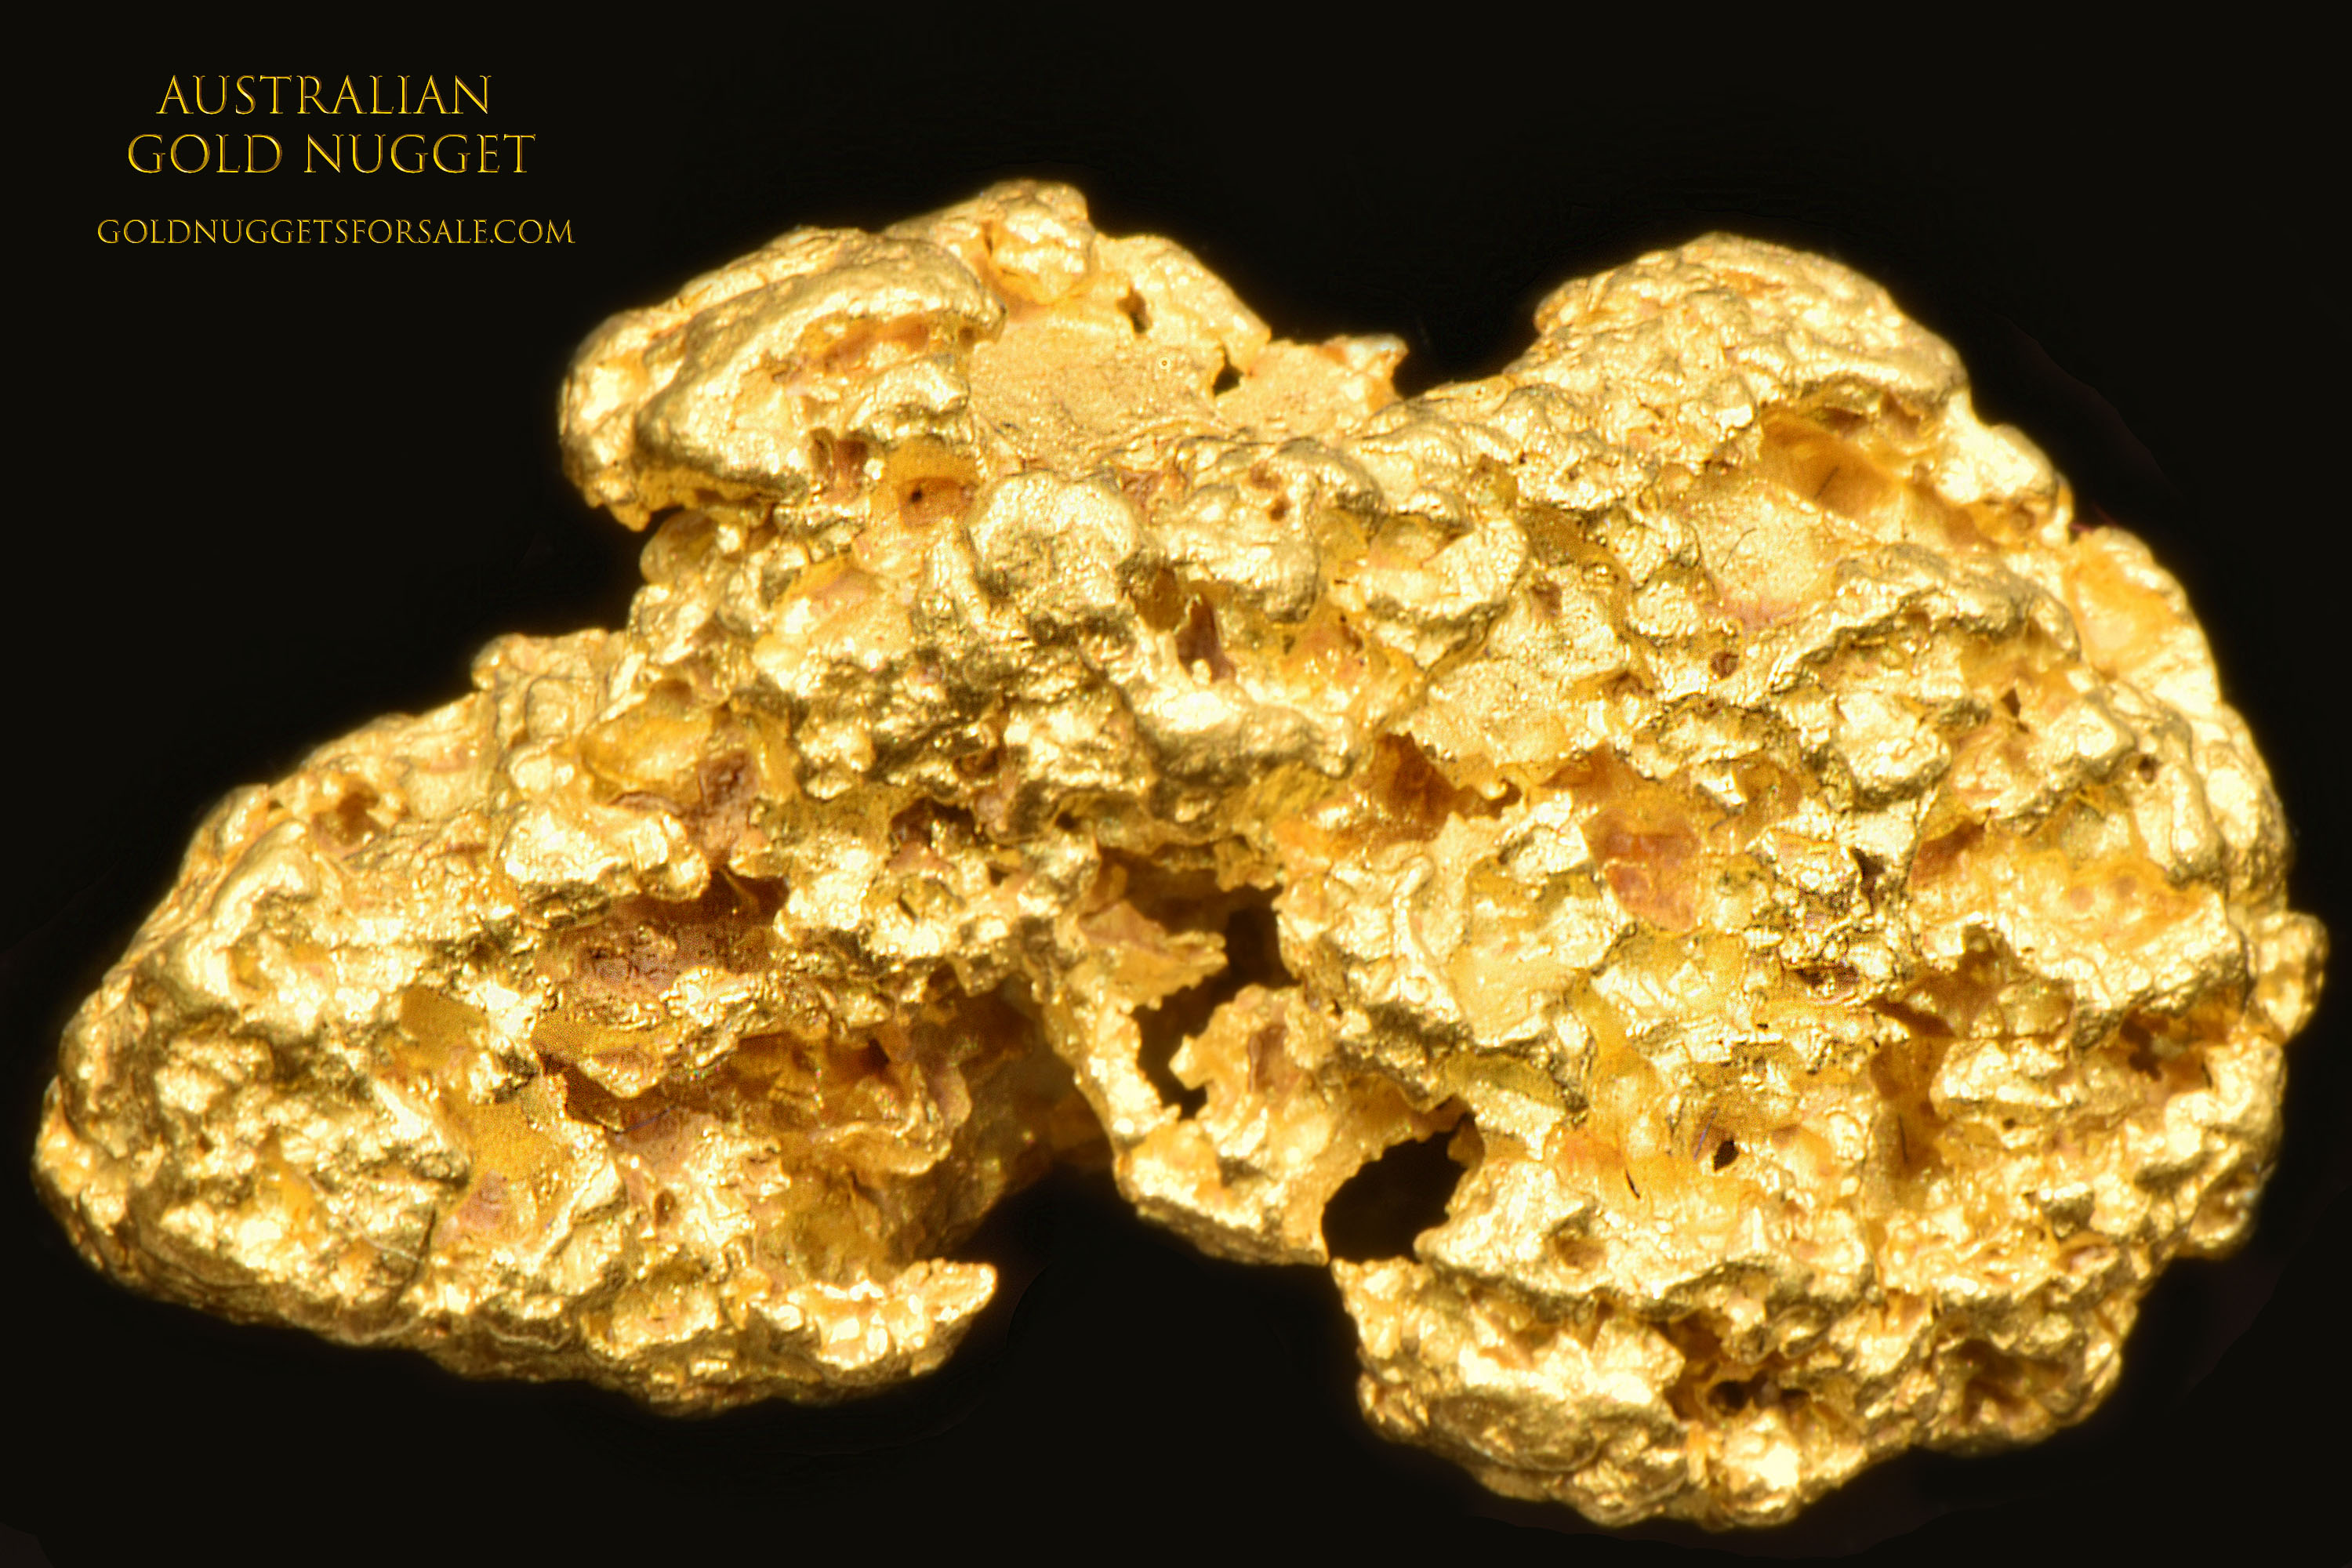 Crusty Texture - Jewelry Grade Australian Gold Nugget